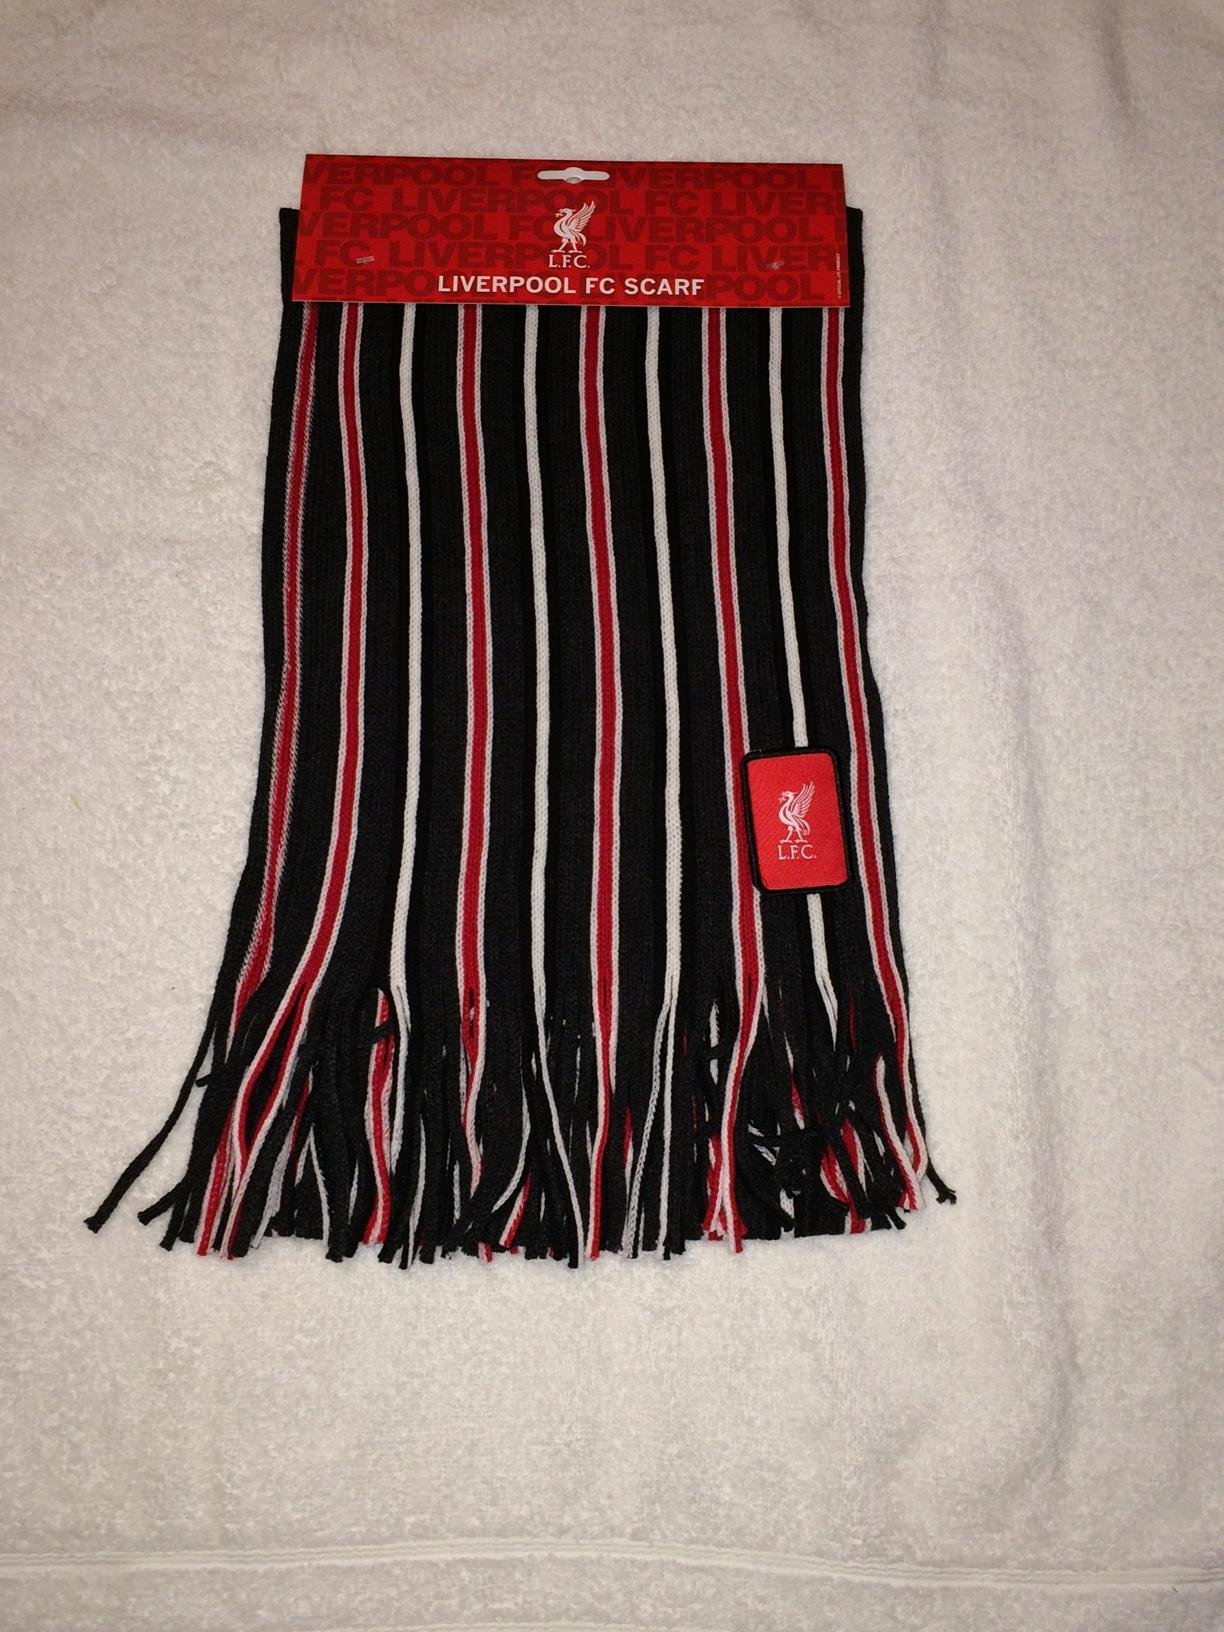 Liverpool FC Official executive college scarf very rare design